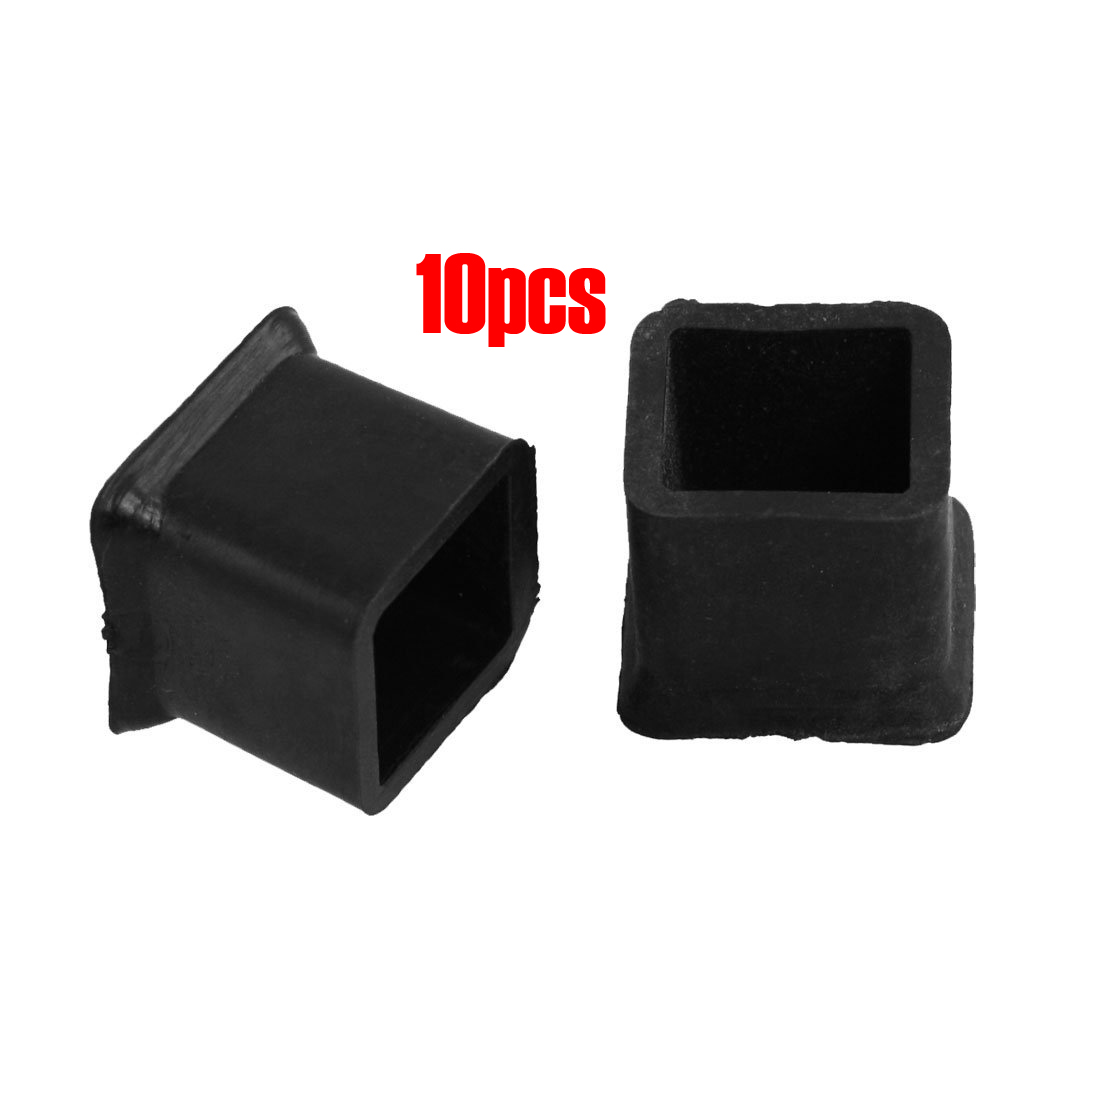 SZS Hot New 10Pcs Furniture Chair Table Leg Rubber Foot Covers Protectors 20mm x 20mm Free Shipping szs hot new 10pcs furniture chair table leg rubber foot covers protectors 20mm x 20mm free shipping